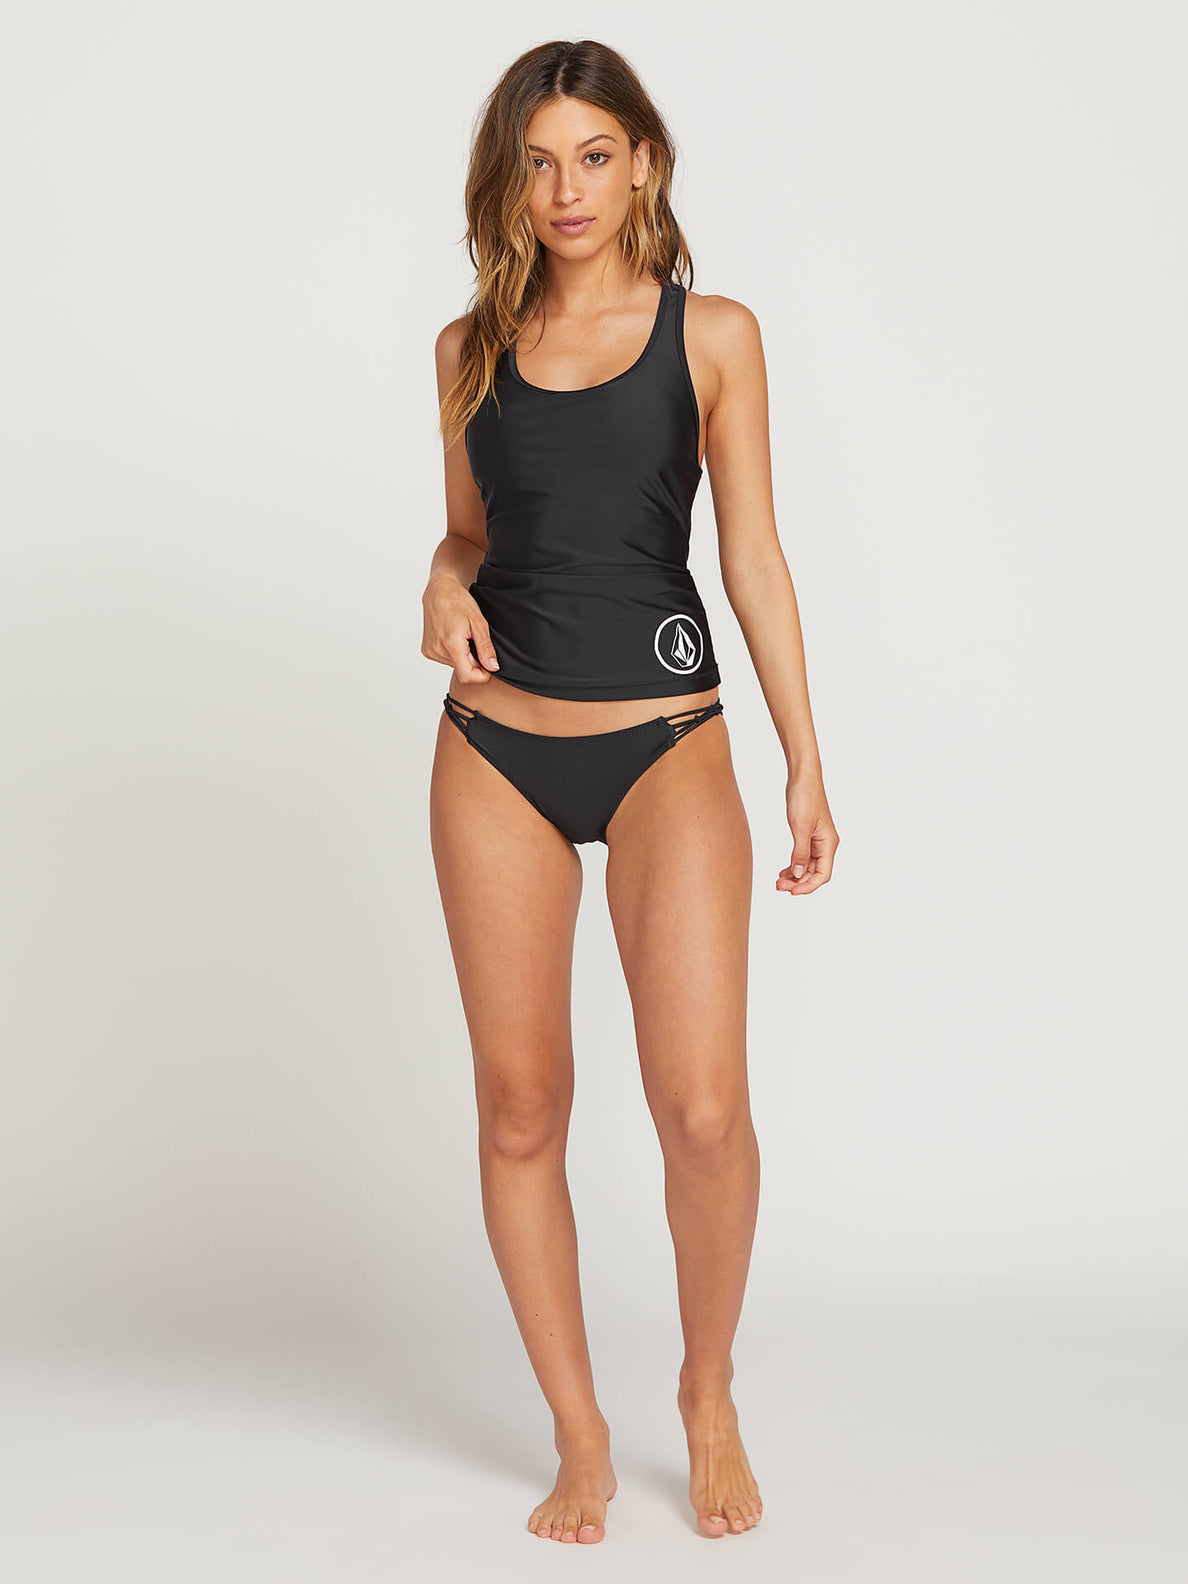 Simply Solid Tankini In Black, Second Alternate View